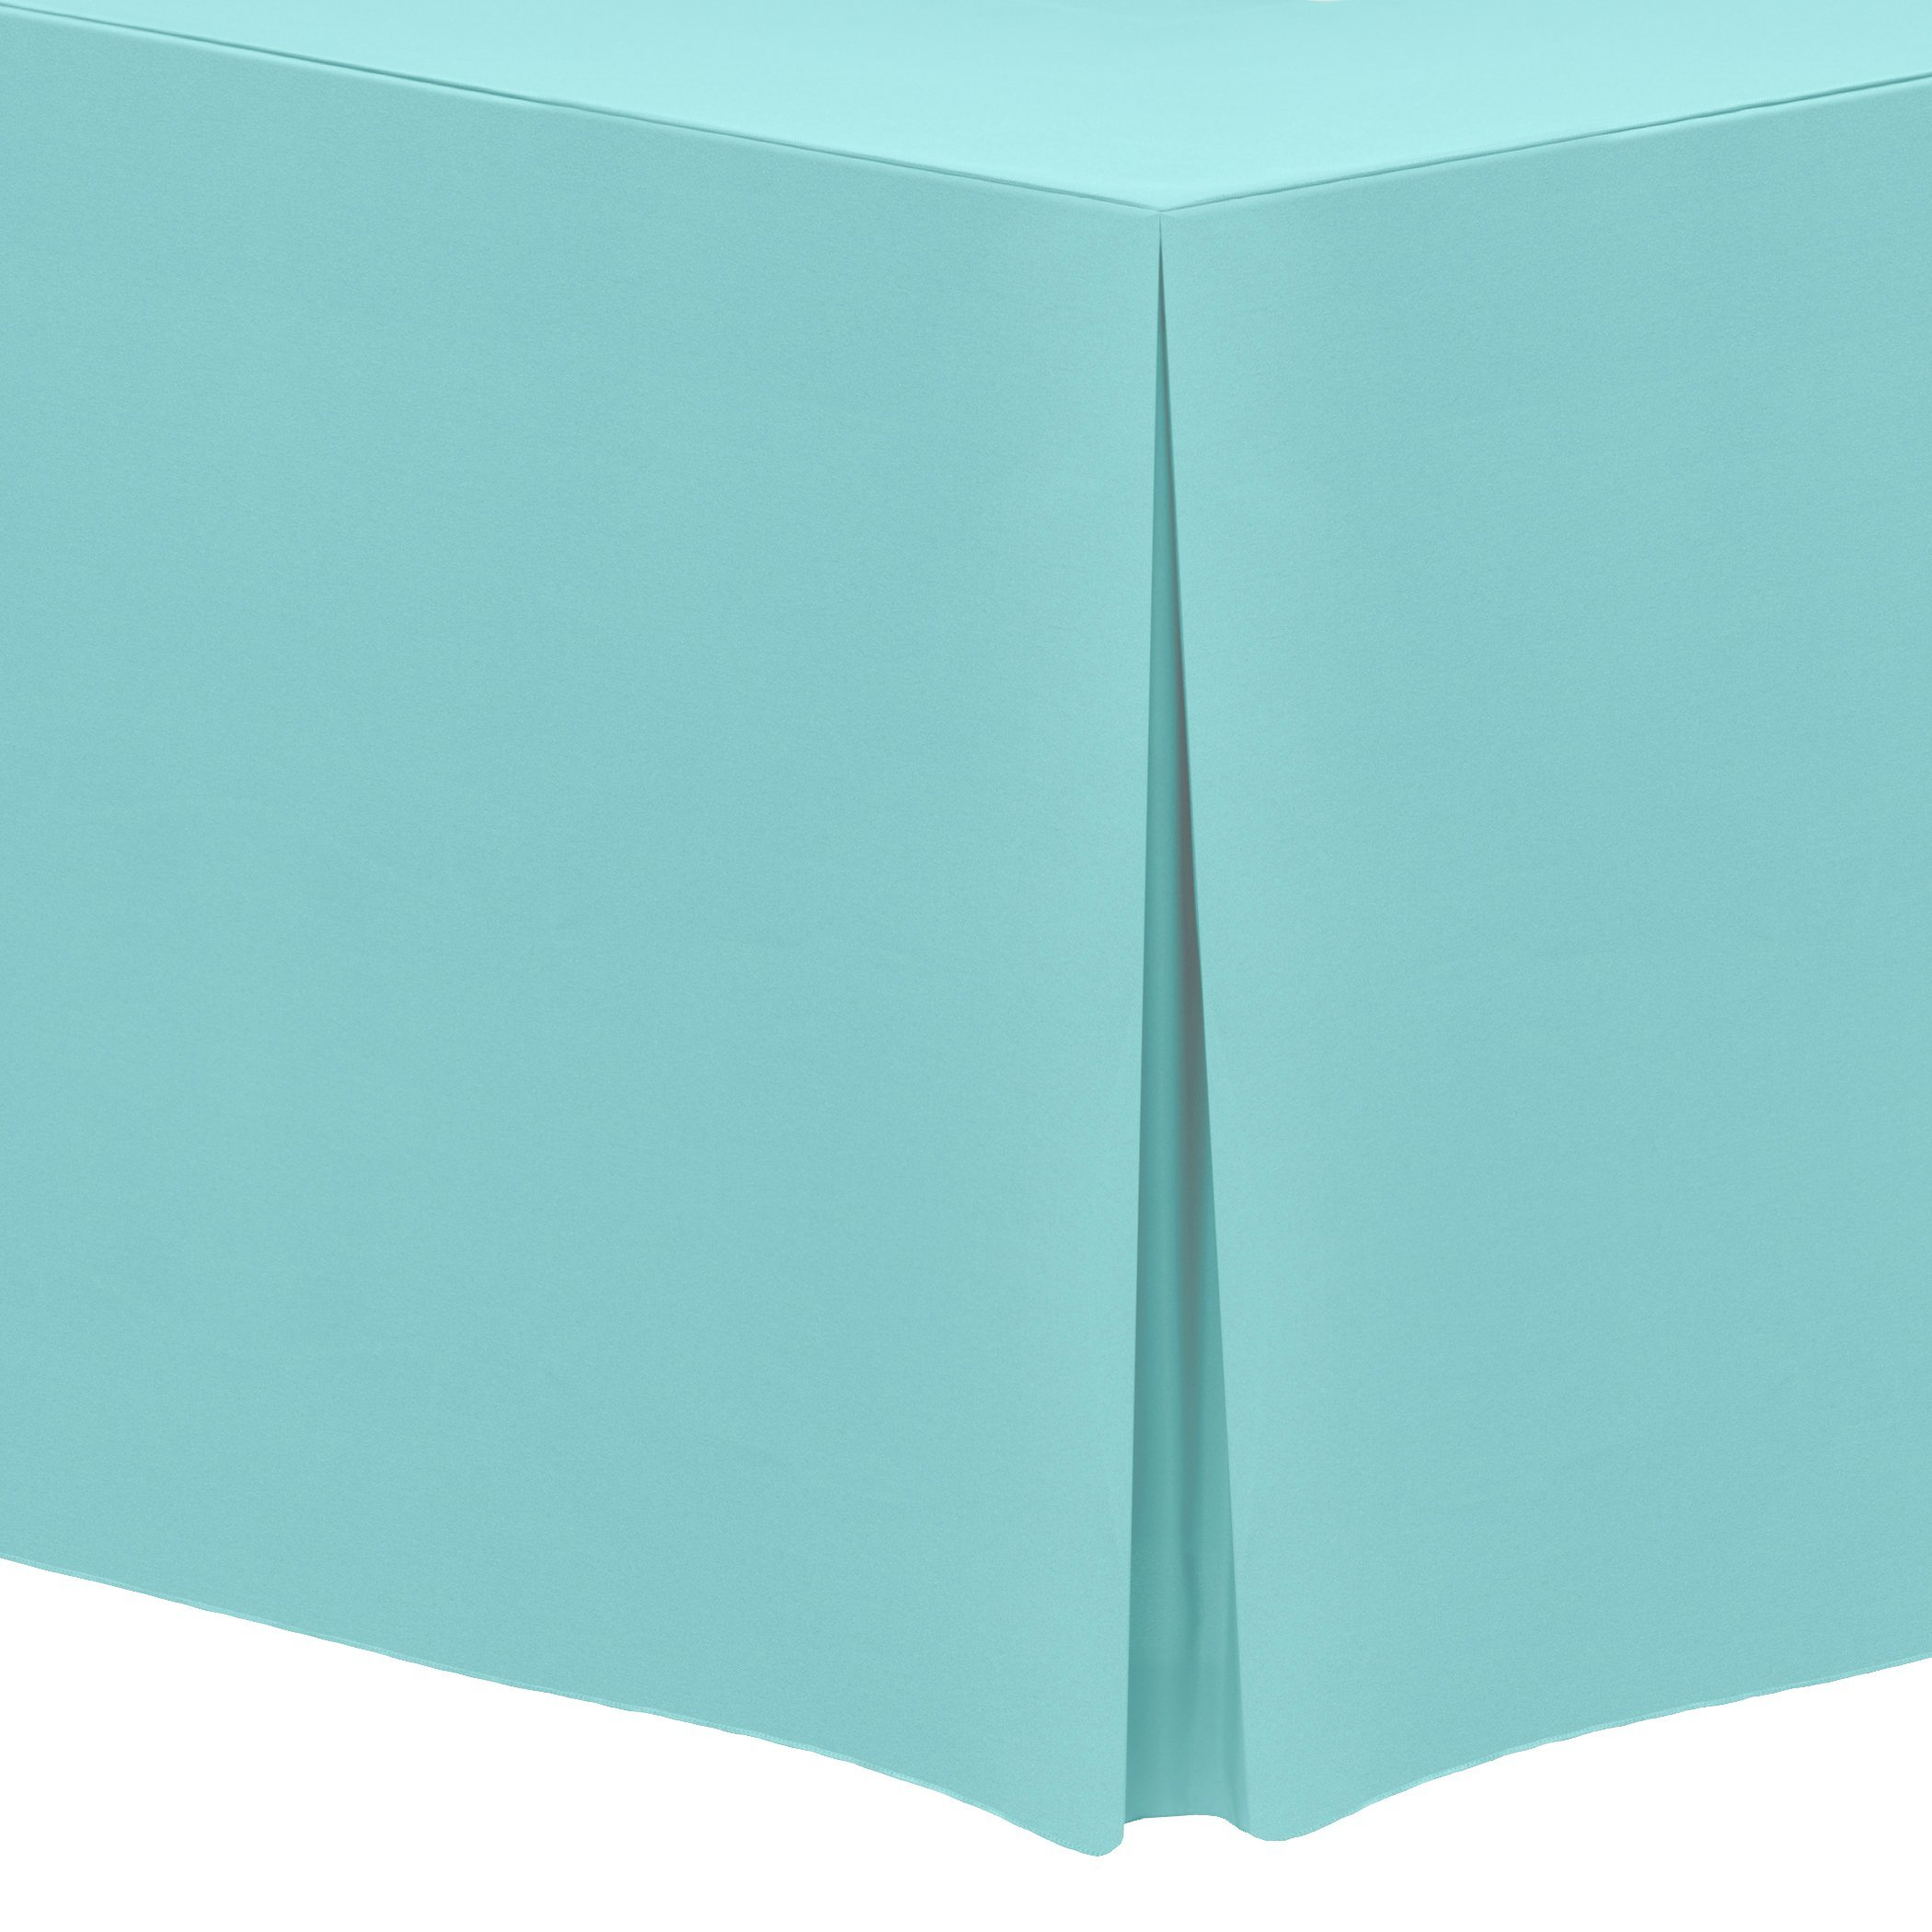 Ultimate Textile (5 Pack) 4 ft. Fitted Polyester Tablecloth - for 24 x 48-Inch Banquet and Folding Rectangular Tables, Aqua Blue